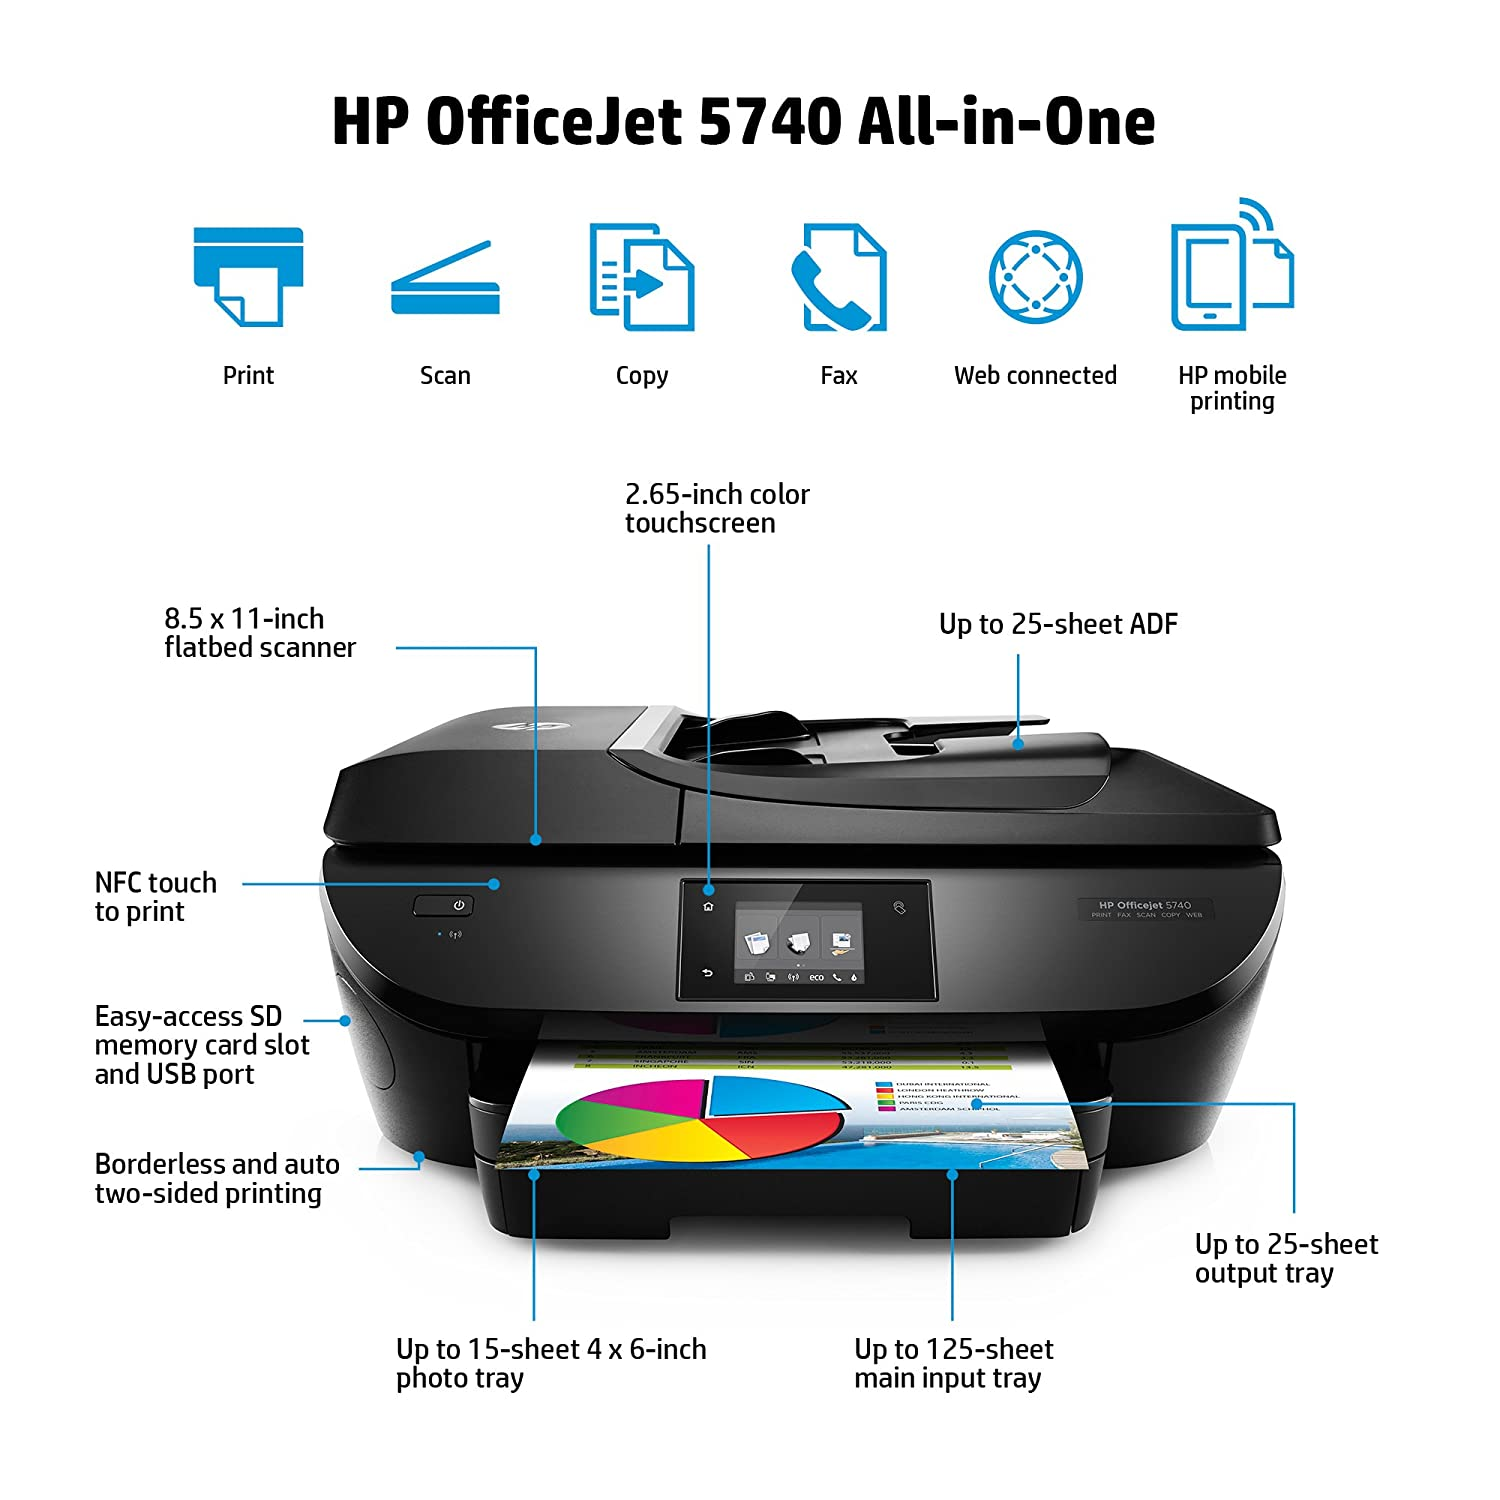 amazon com hp officejet 5740 wireless all in one photo printer with rh amazon com HP Deskjet 2541 HP Deskjet 2541